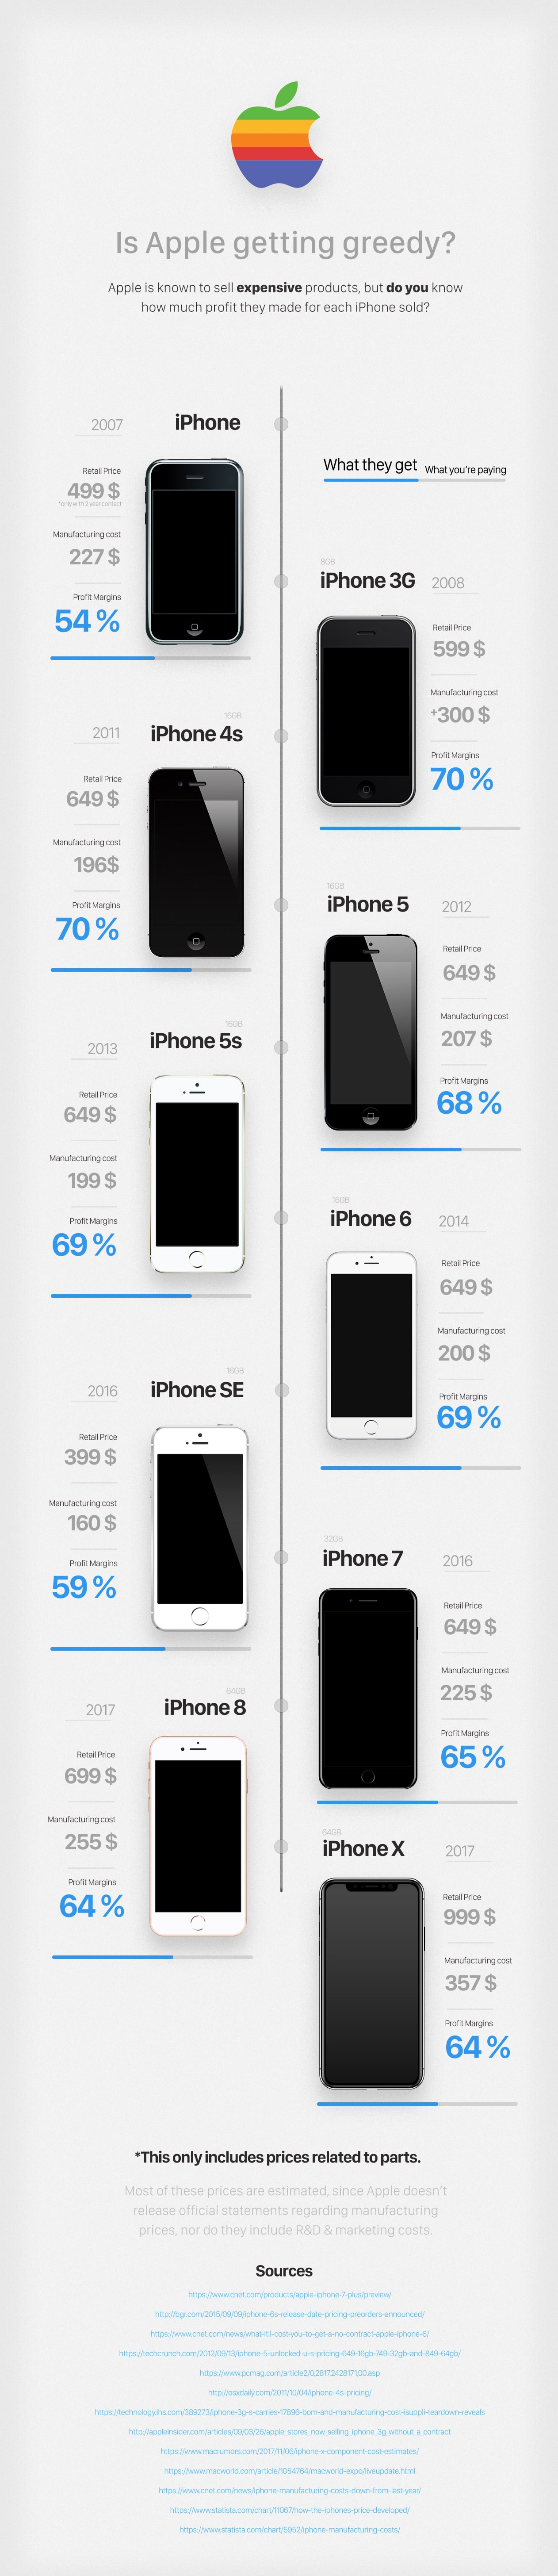 iPhone X Apple Too Greedy Infographic